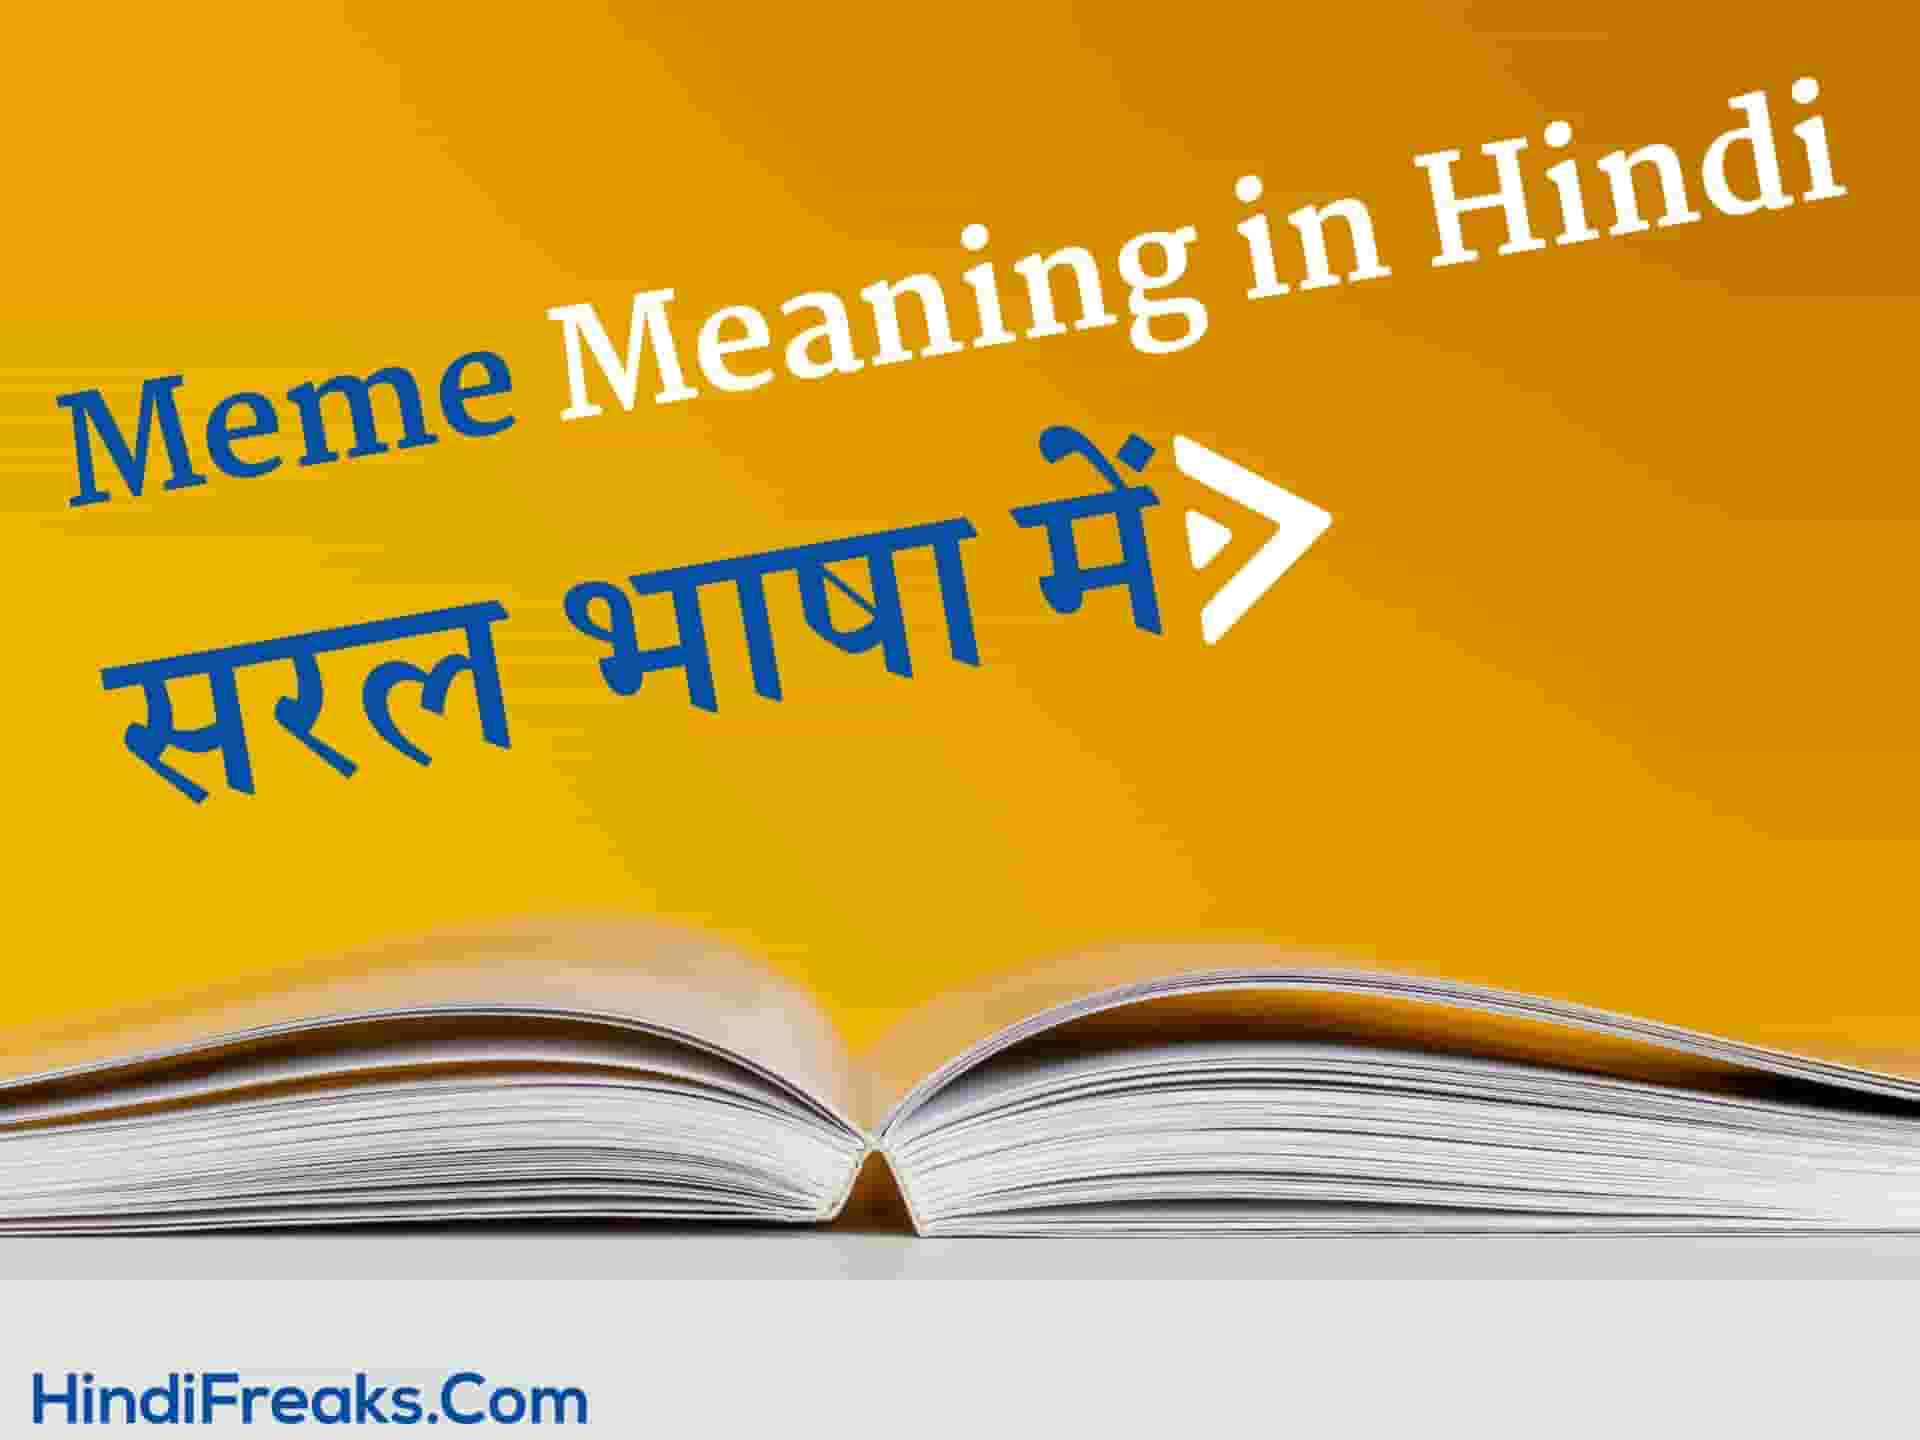 Meme-Meaning-in-Hindi